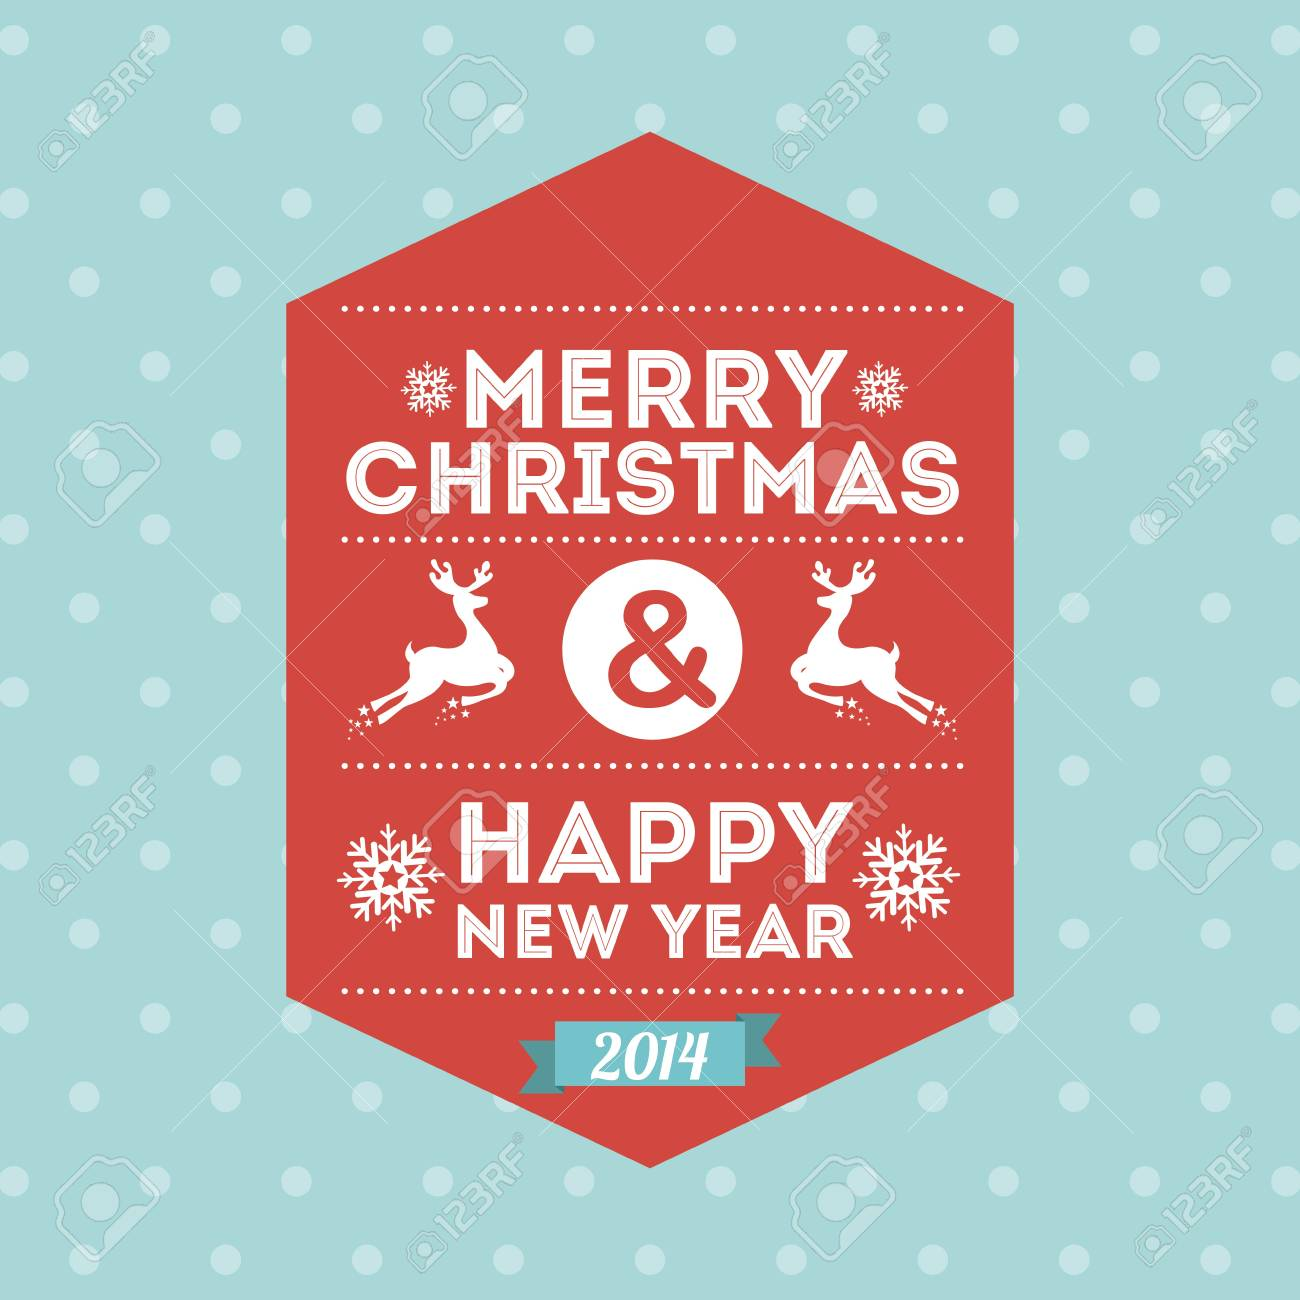 merry christmas and happy new year  over dotted background  vector illustration Stock Vector - 22959387